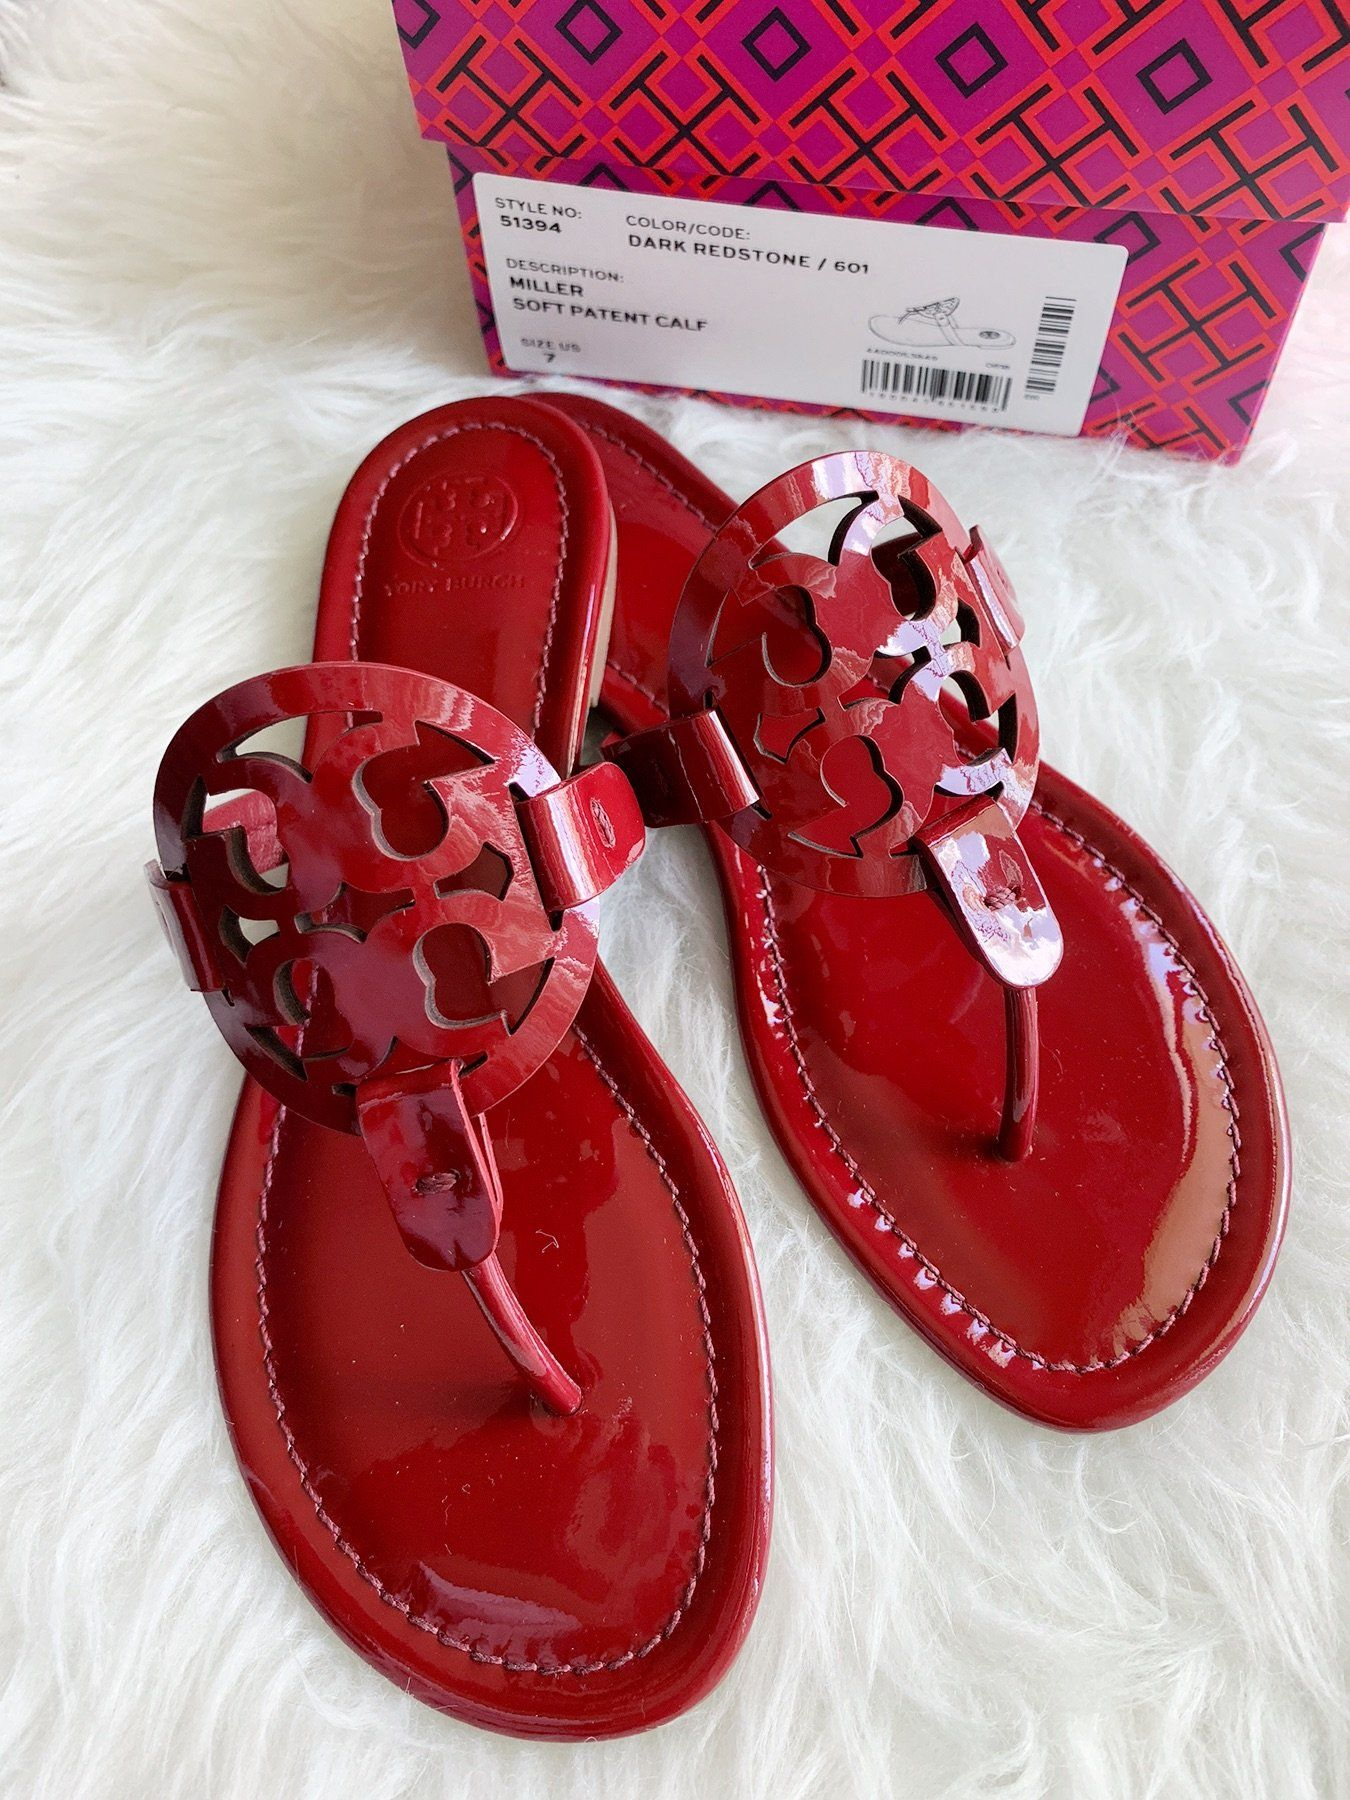 a05f3300c93cf Tory Burch Miller Sandals Flip Flop Dark Red Stone 7  ebayseller   tradesyseller  rated  ebaycommunity  toprated  ebayfashion  Handbags   poshpackages ...